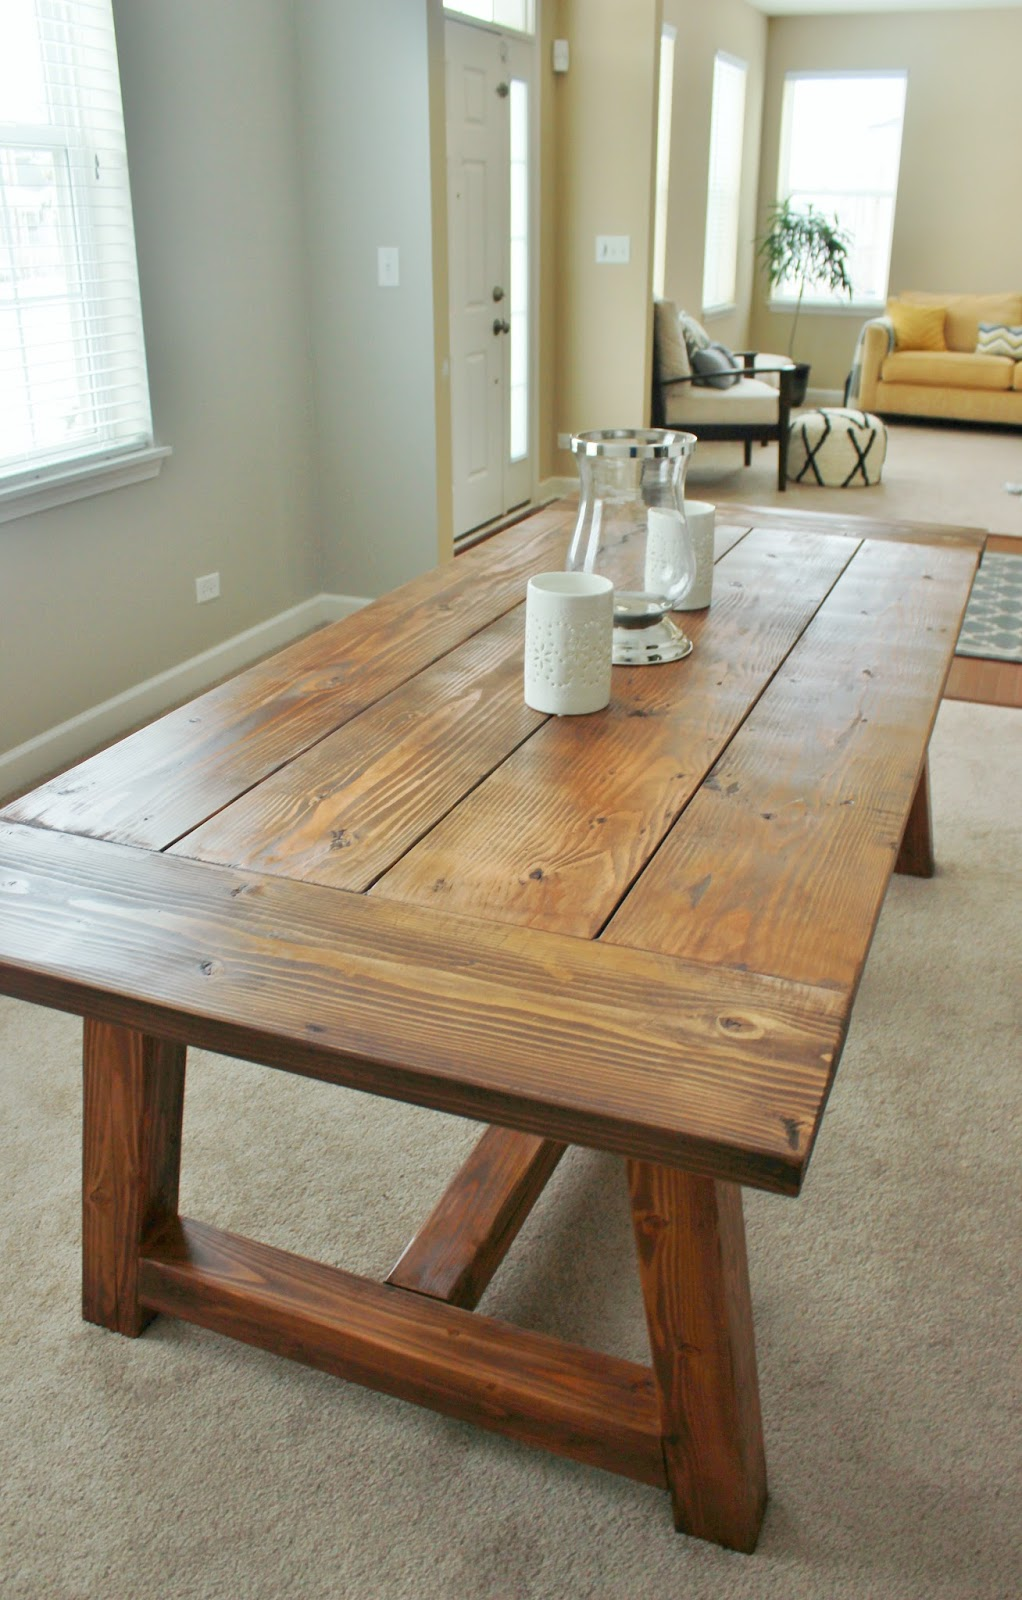 DIY farmhouse table rustic style